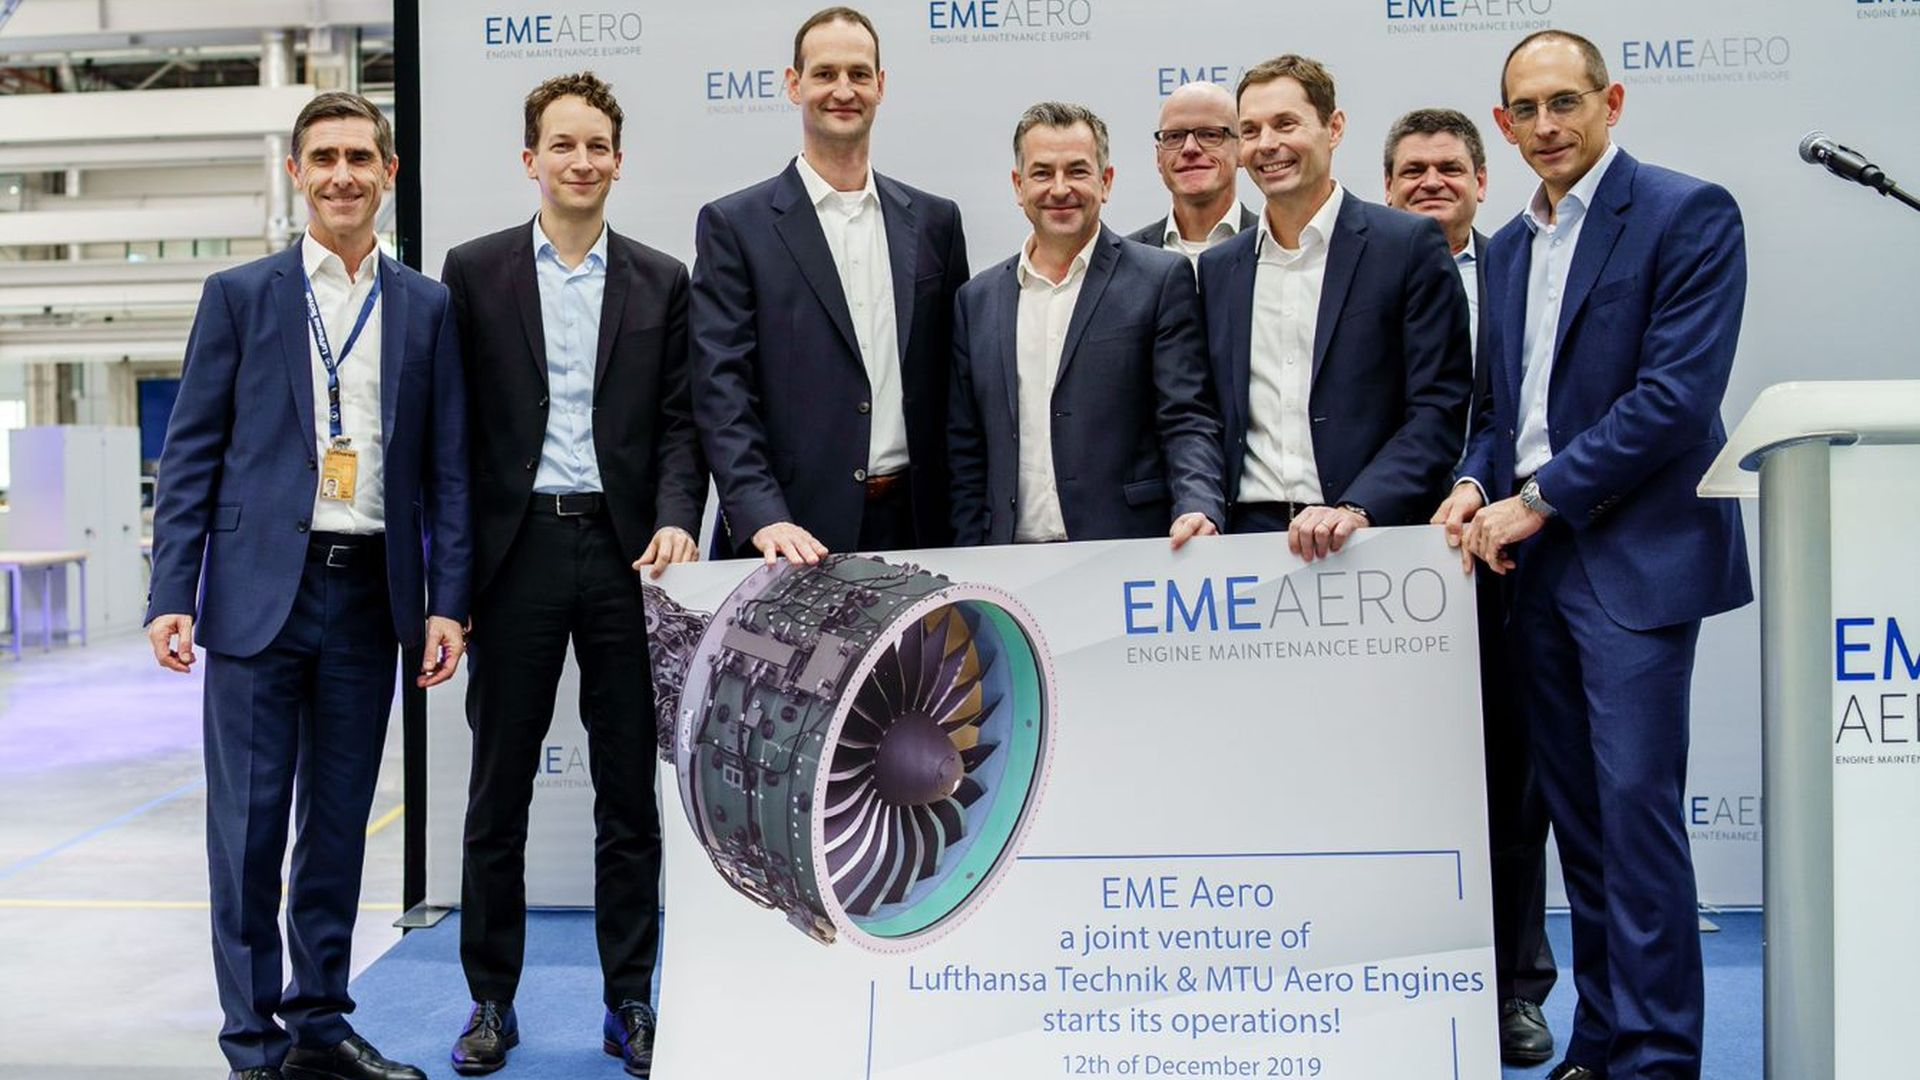 EME AERO has obtained EASA 145 certification as maintenance shop